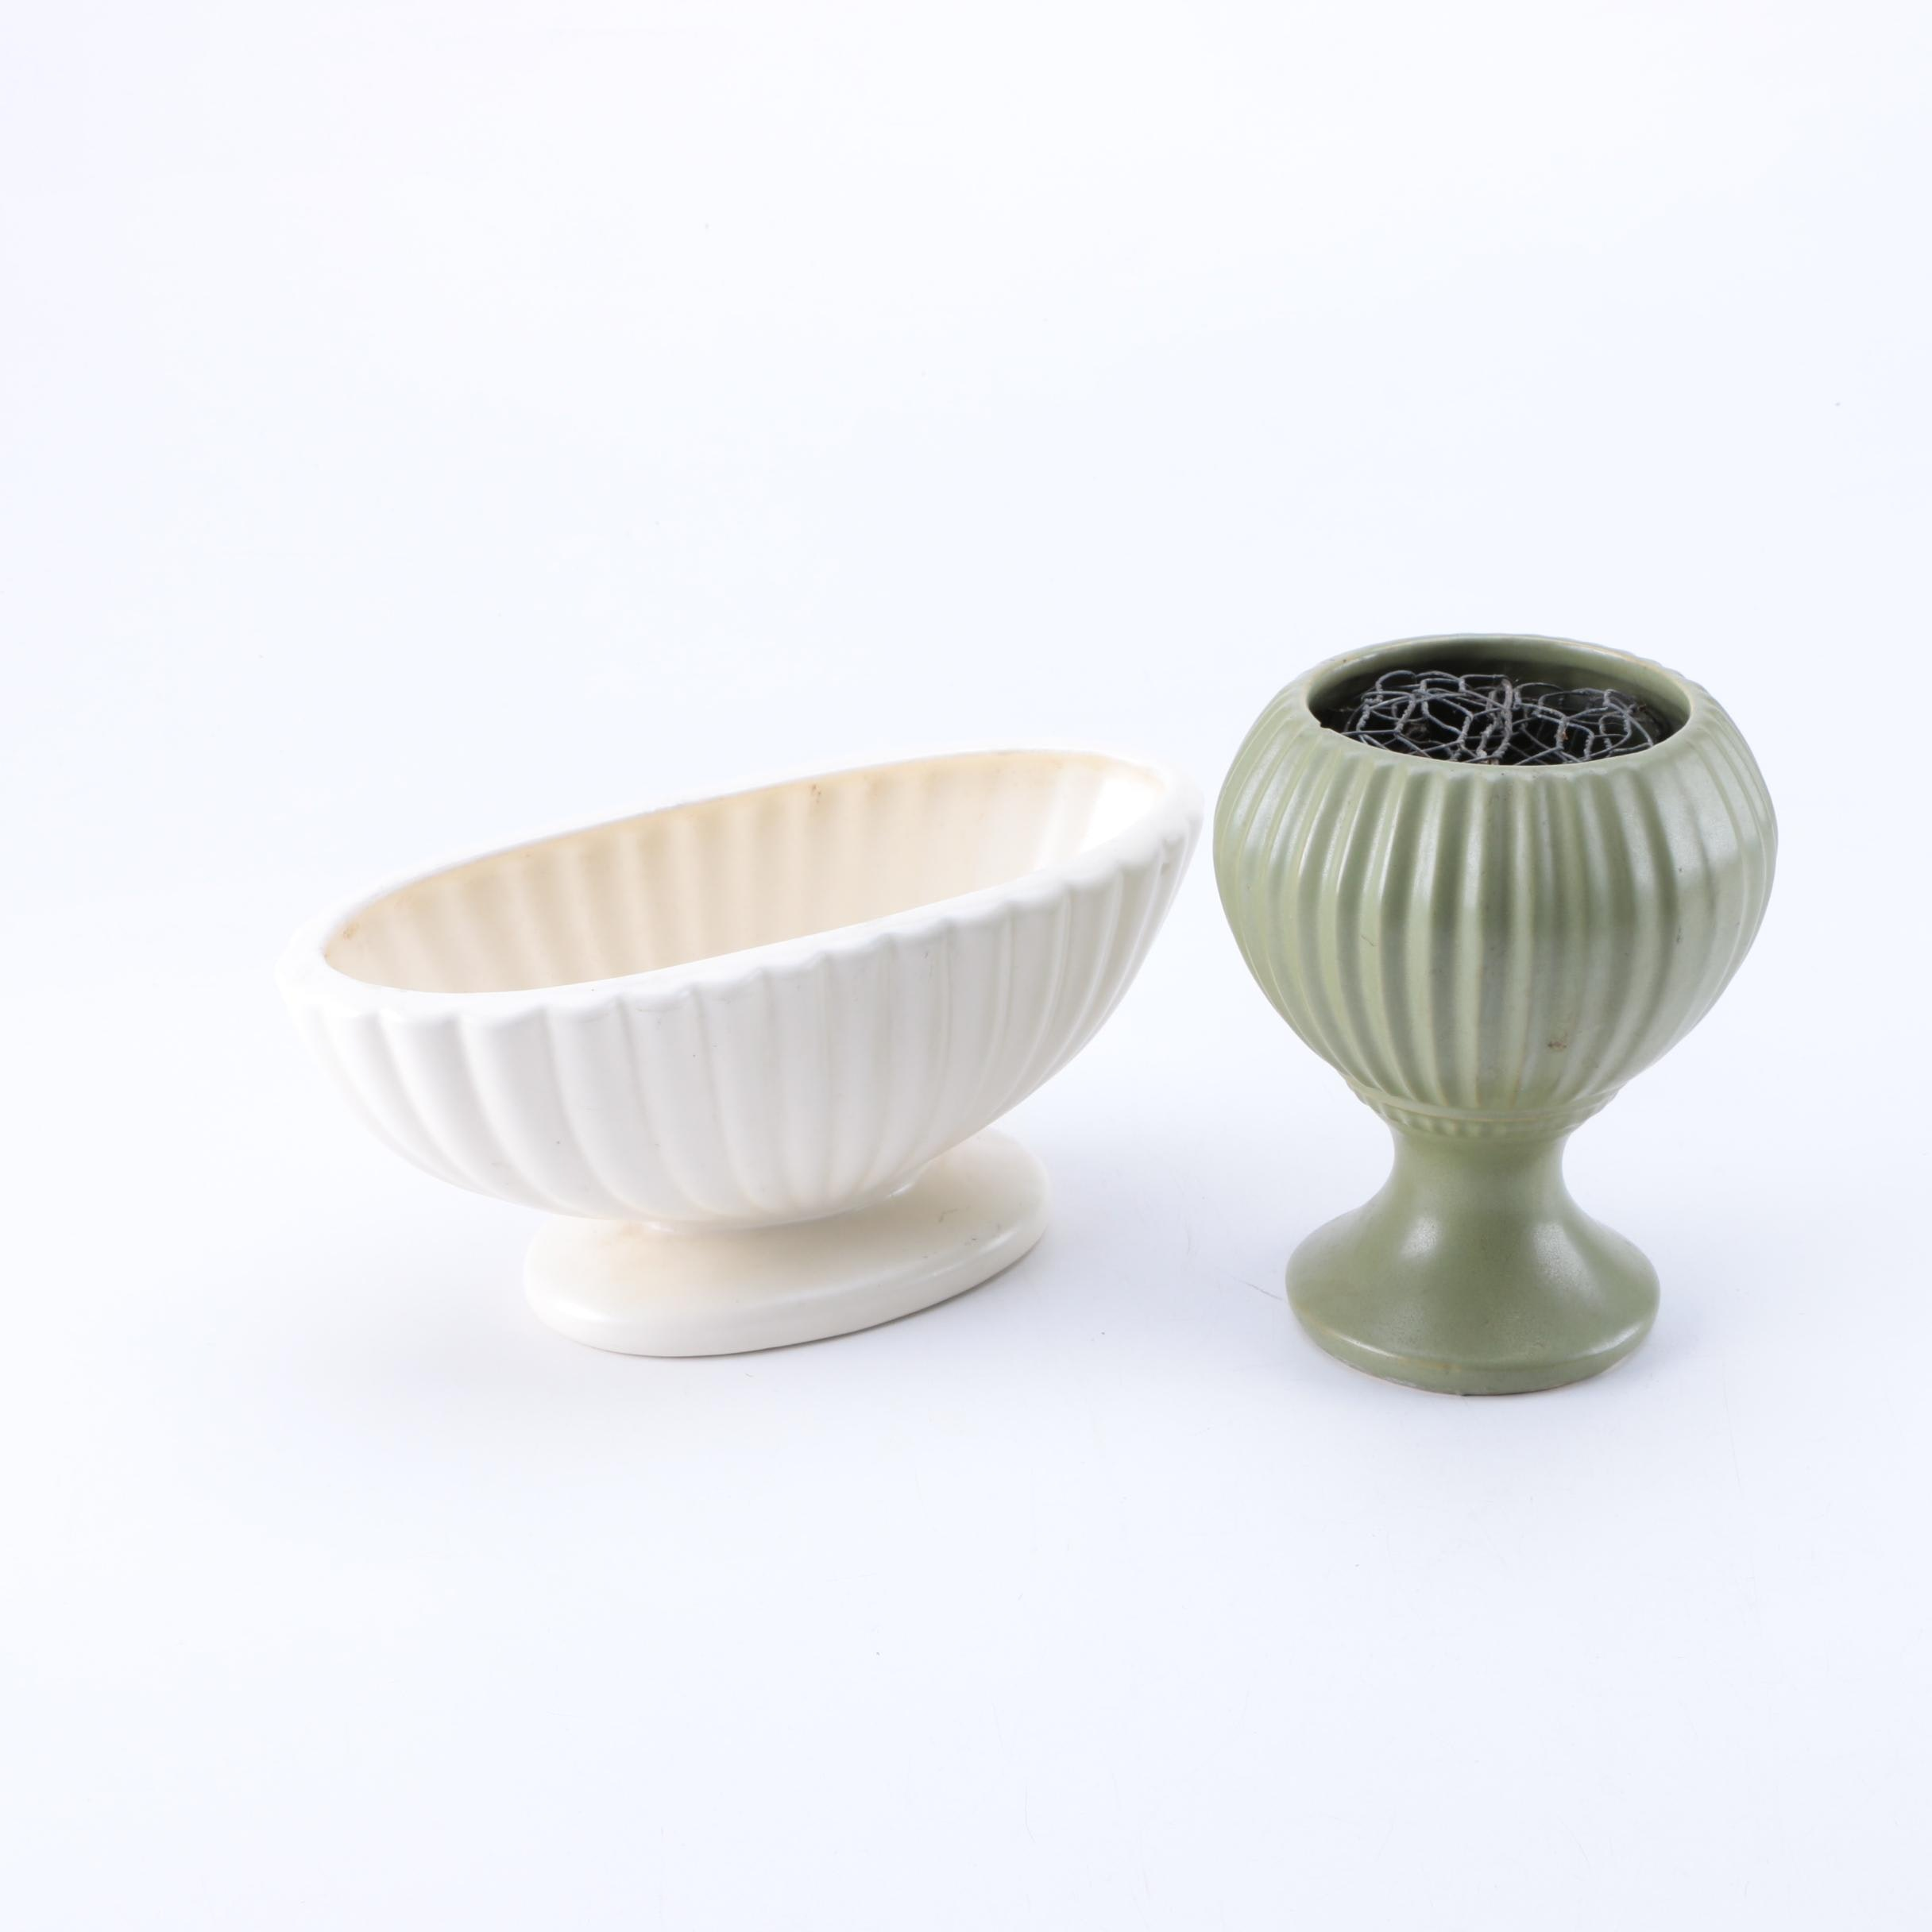 Pairing of Two Vintage Planters